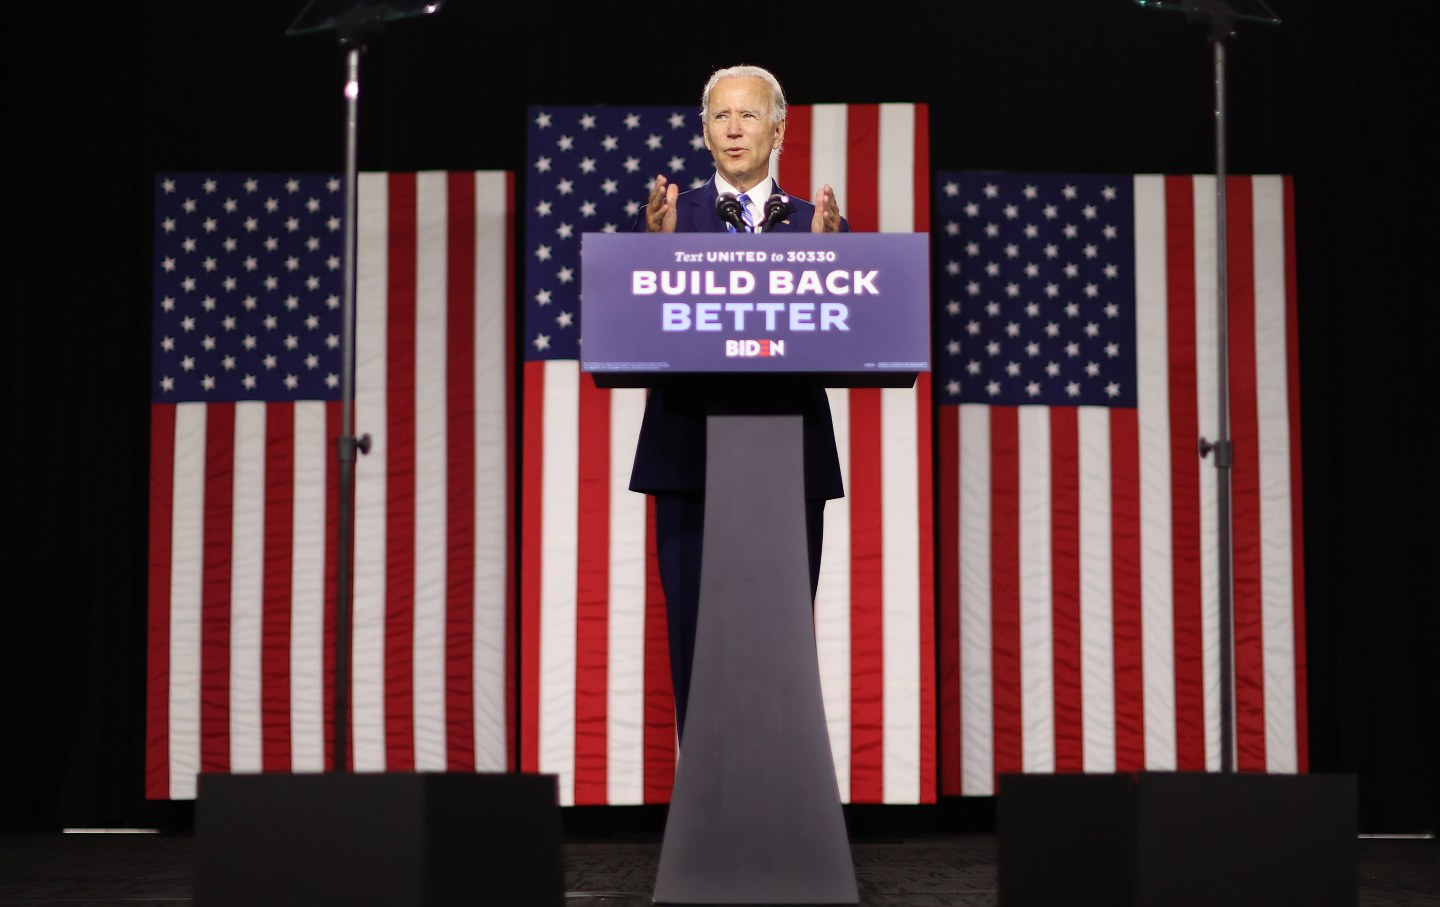 Joe Biden speaks at a podium that reads